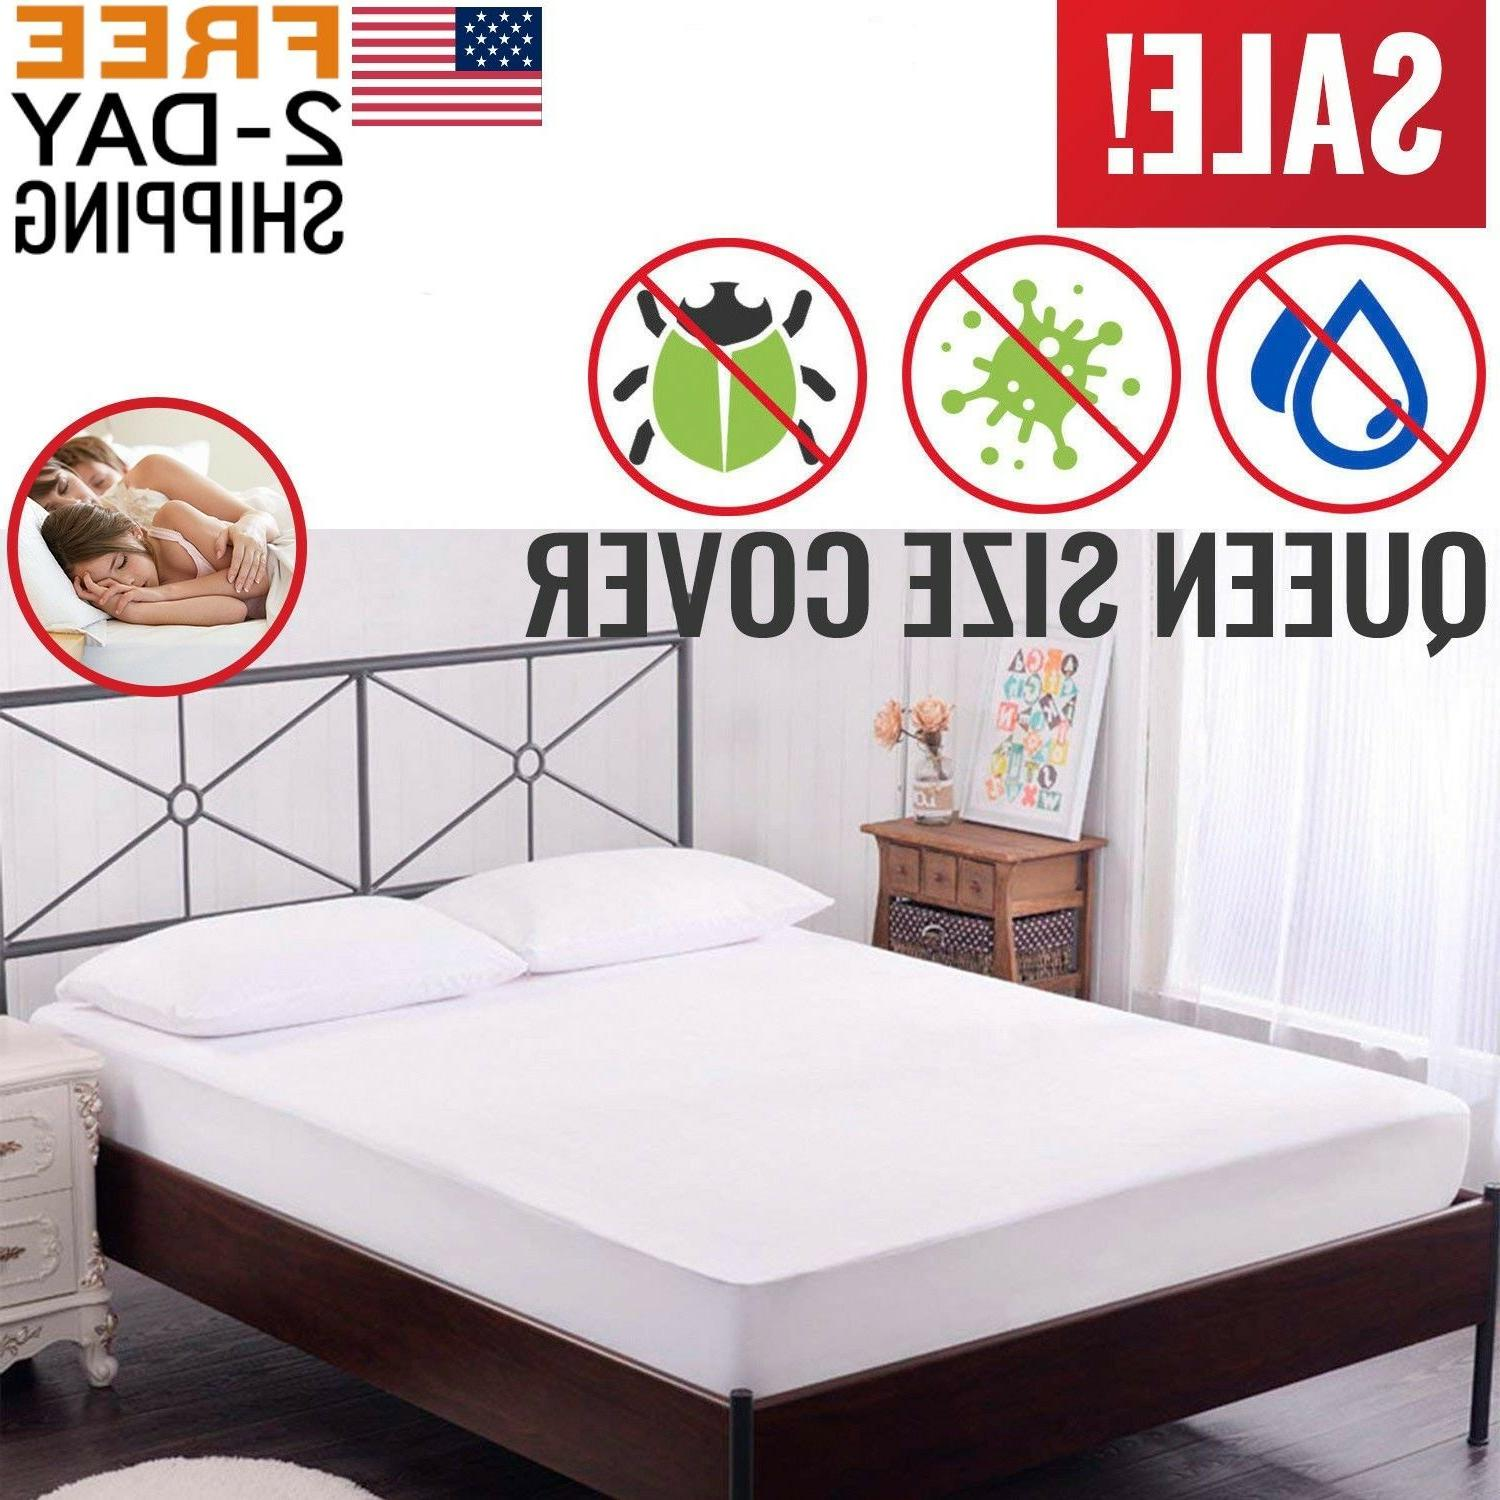 mattress cover protector waterproof pad queen size